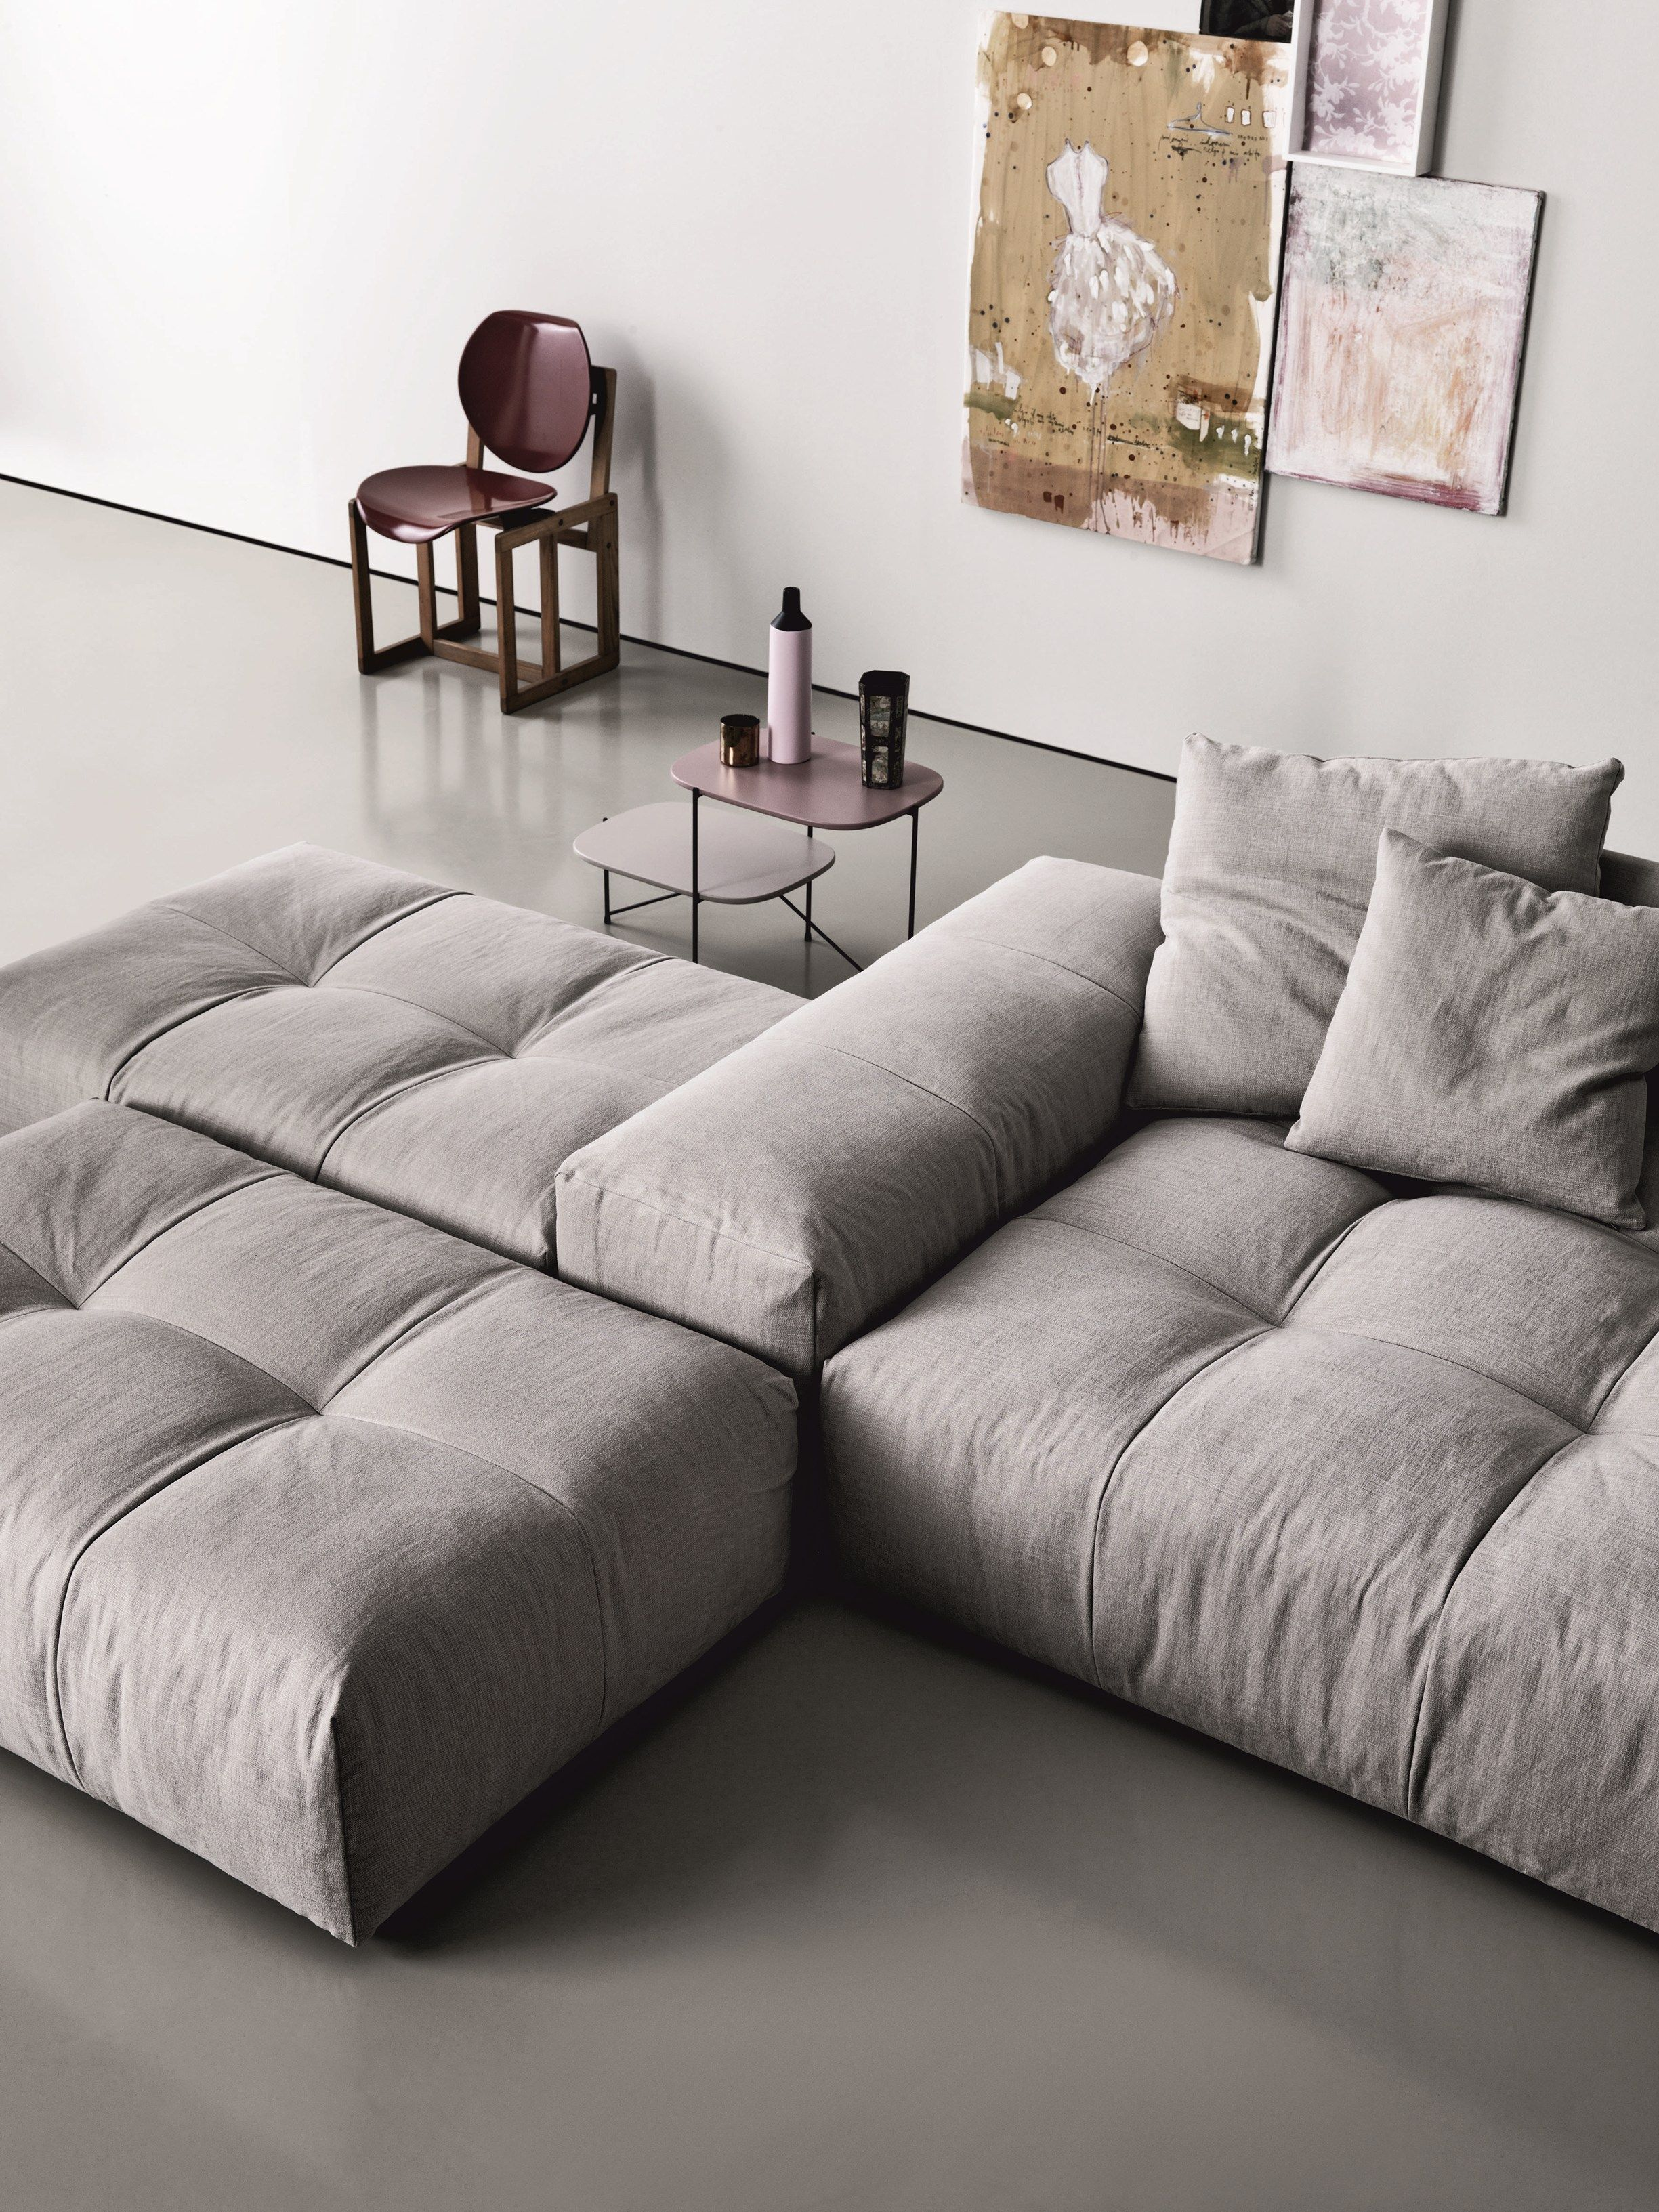 Cheap Modular Lounges Pin By Frankie Fan On Furniture Modular Sectional Sofa Modular